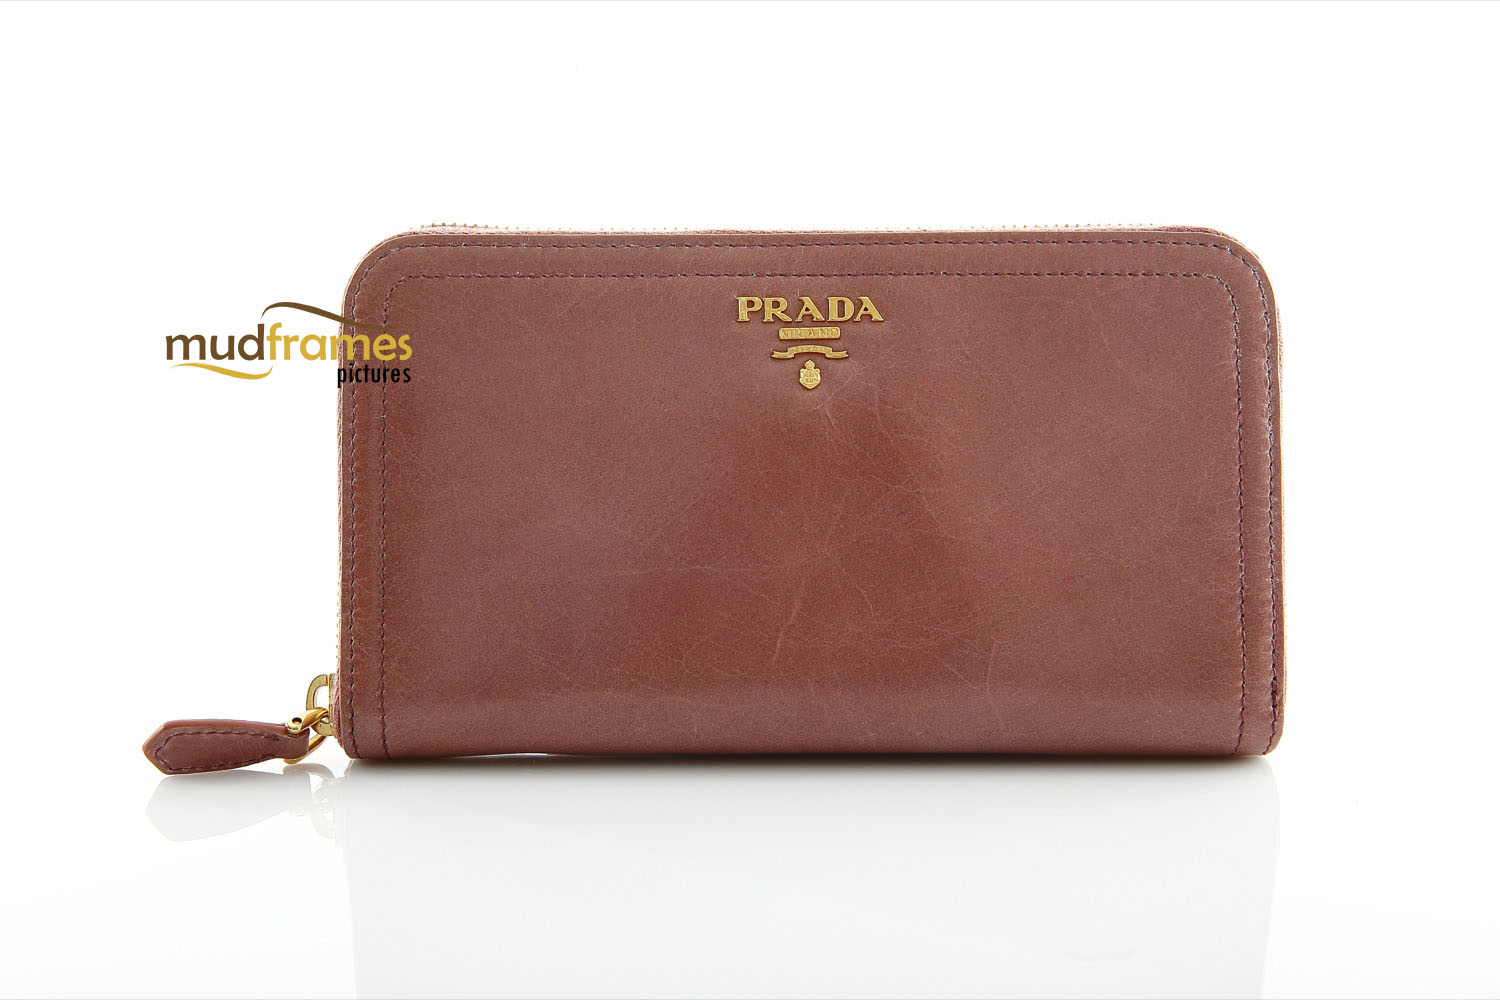 Prada purse on white background